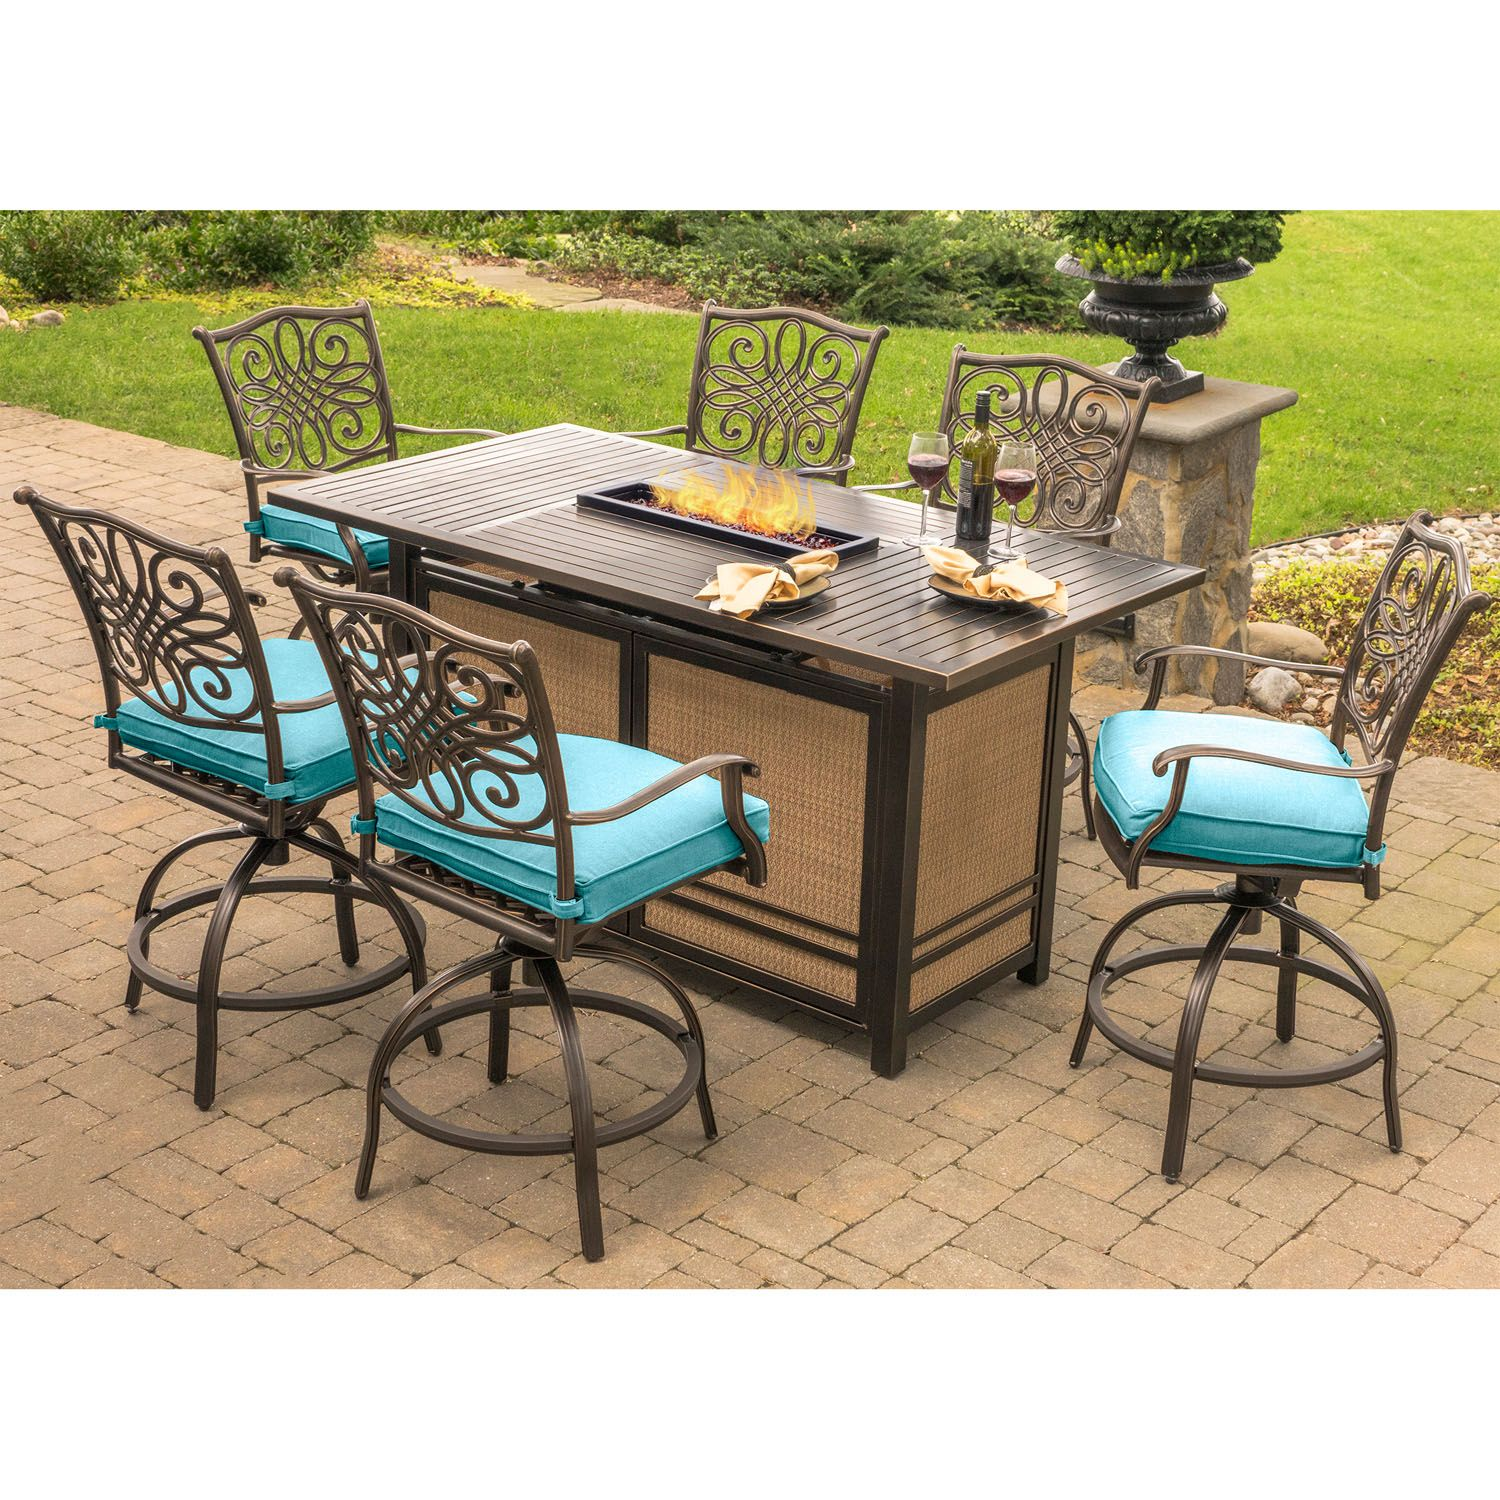 Phenomenal Hanover Traditions 7 Piece High Dining Set In Blue With Home Interior And Landscaping Spoatsignezvosmurscom